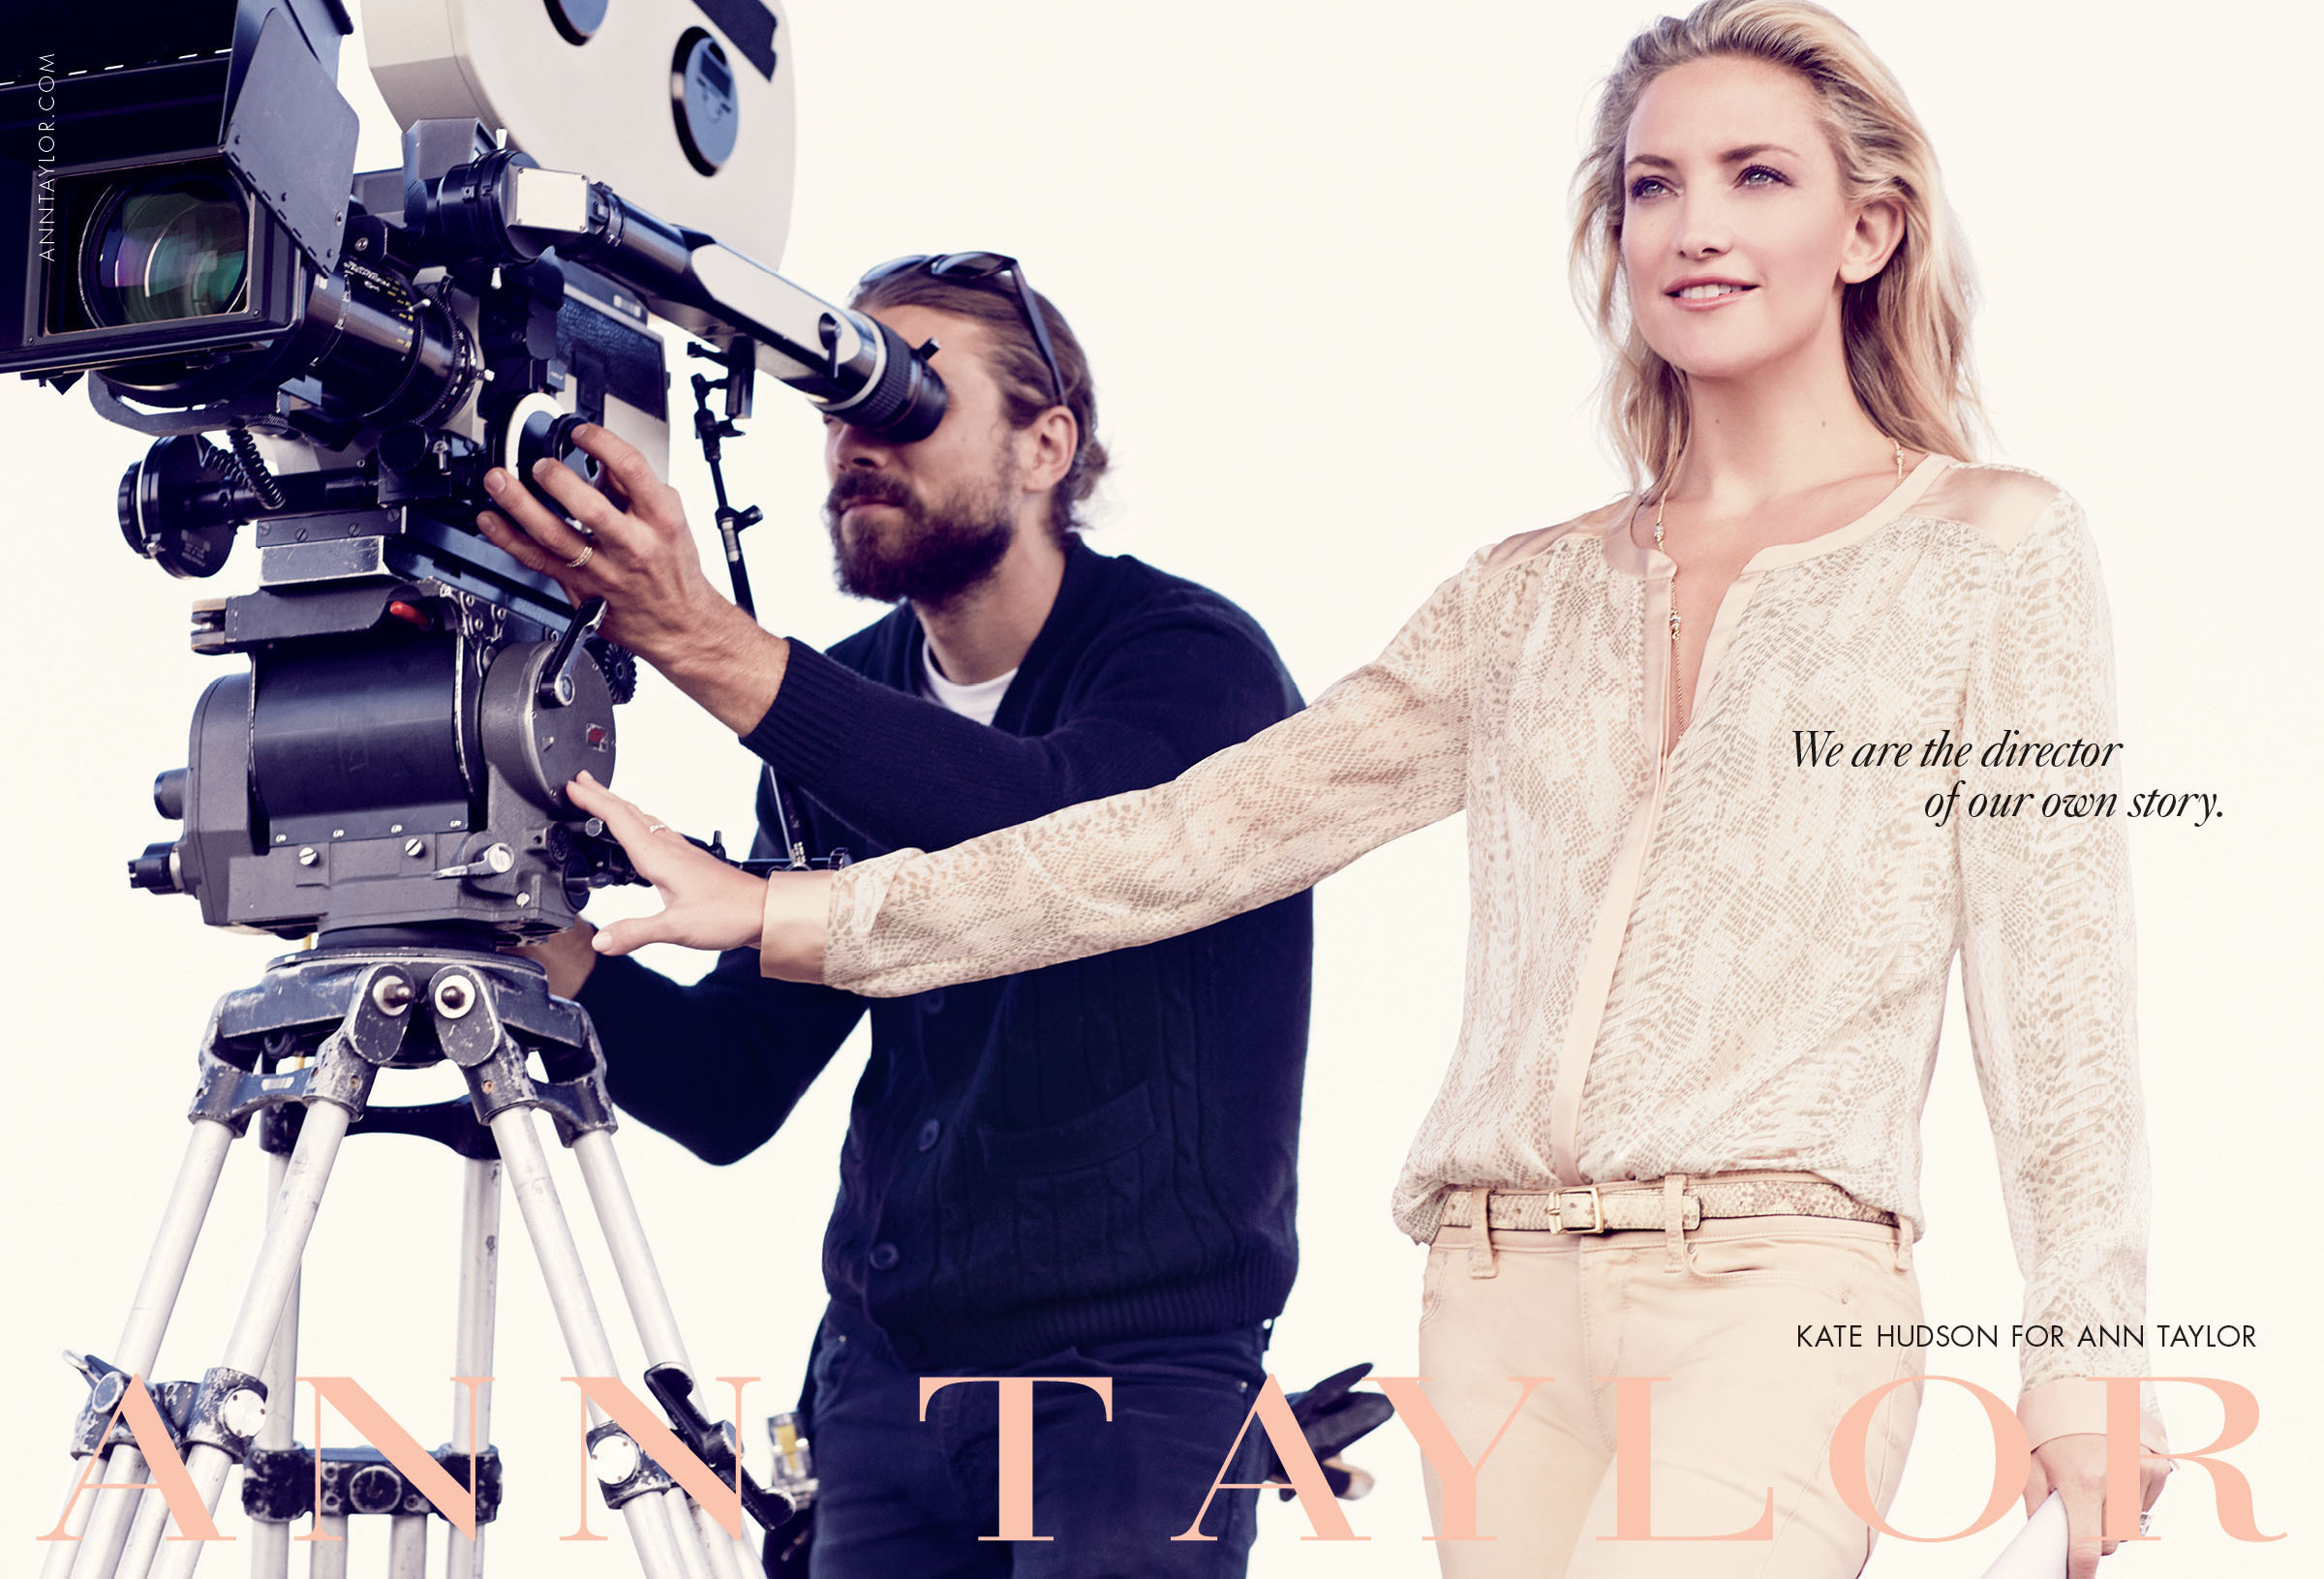 Ann Taylor Goes Behind the Camera with Kate Hudson